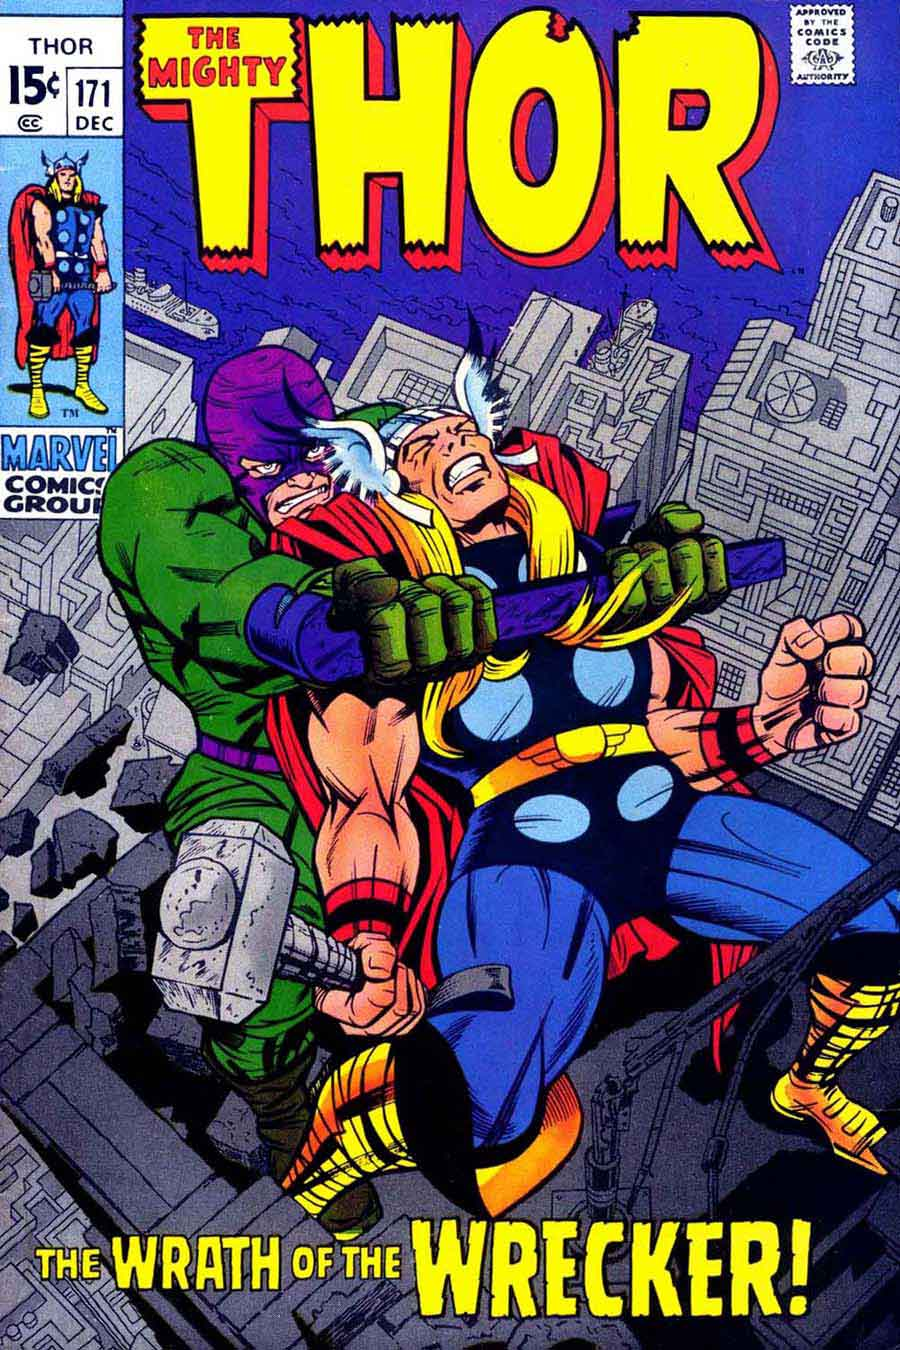 Comic Book Cover Art : Thor jack kirby art cover pencil ink